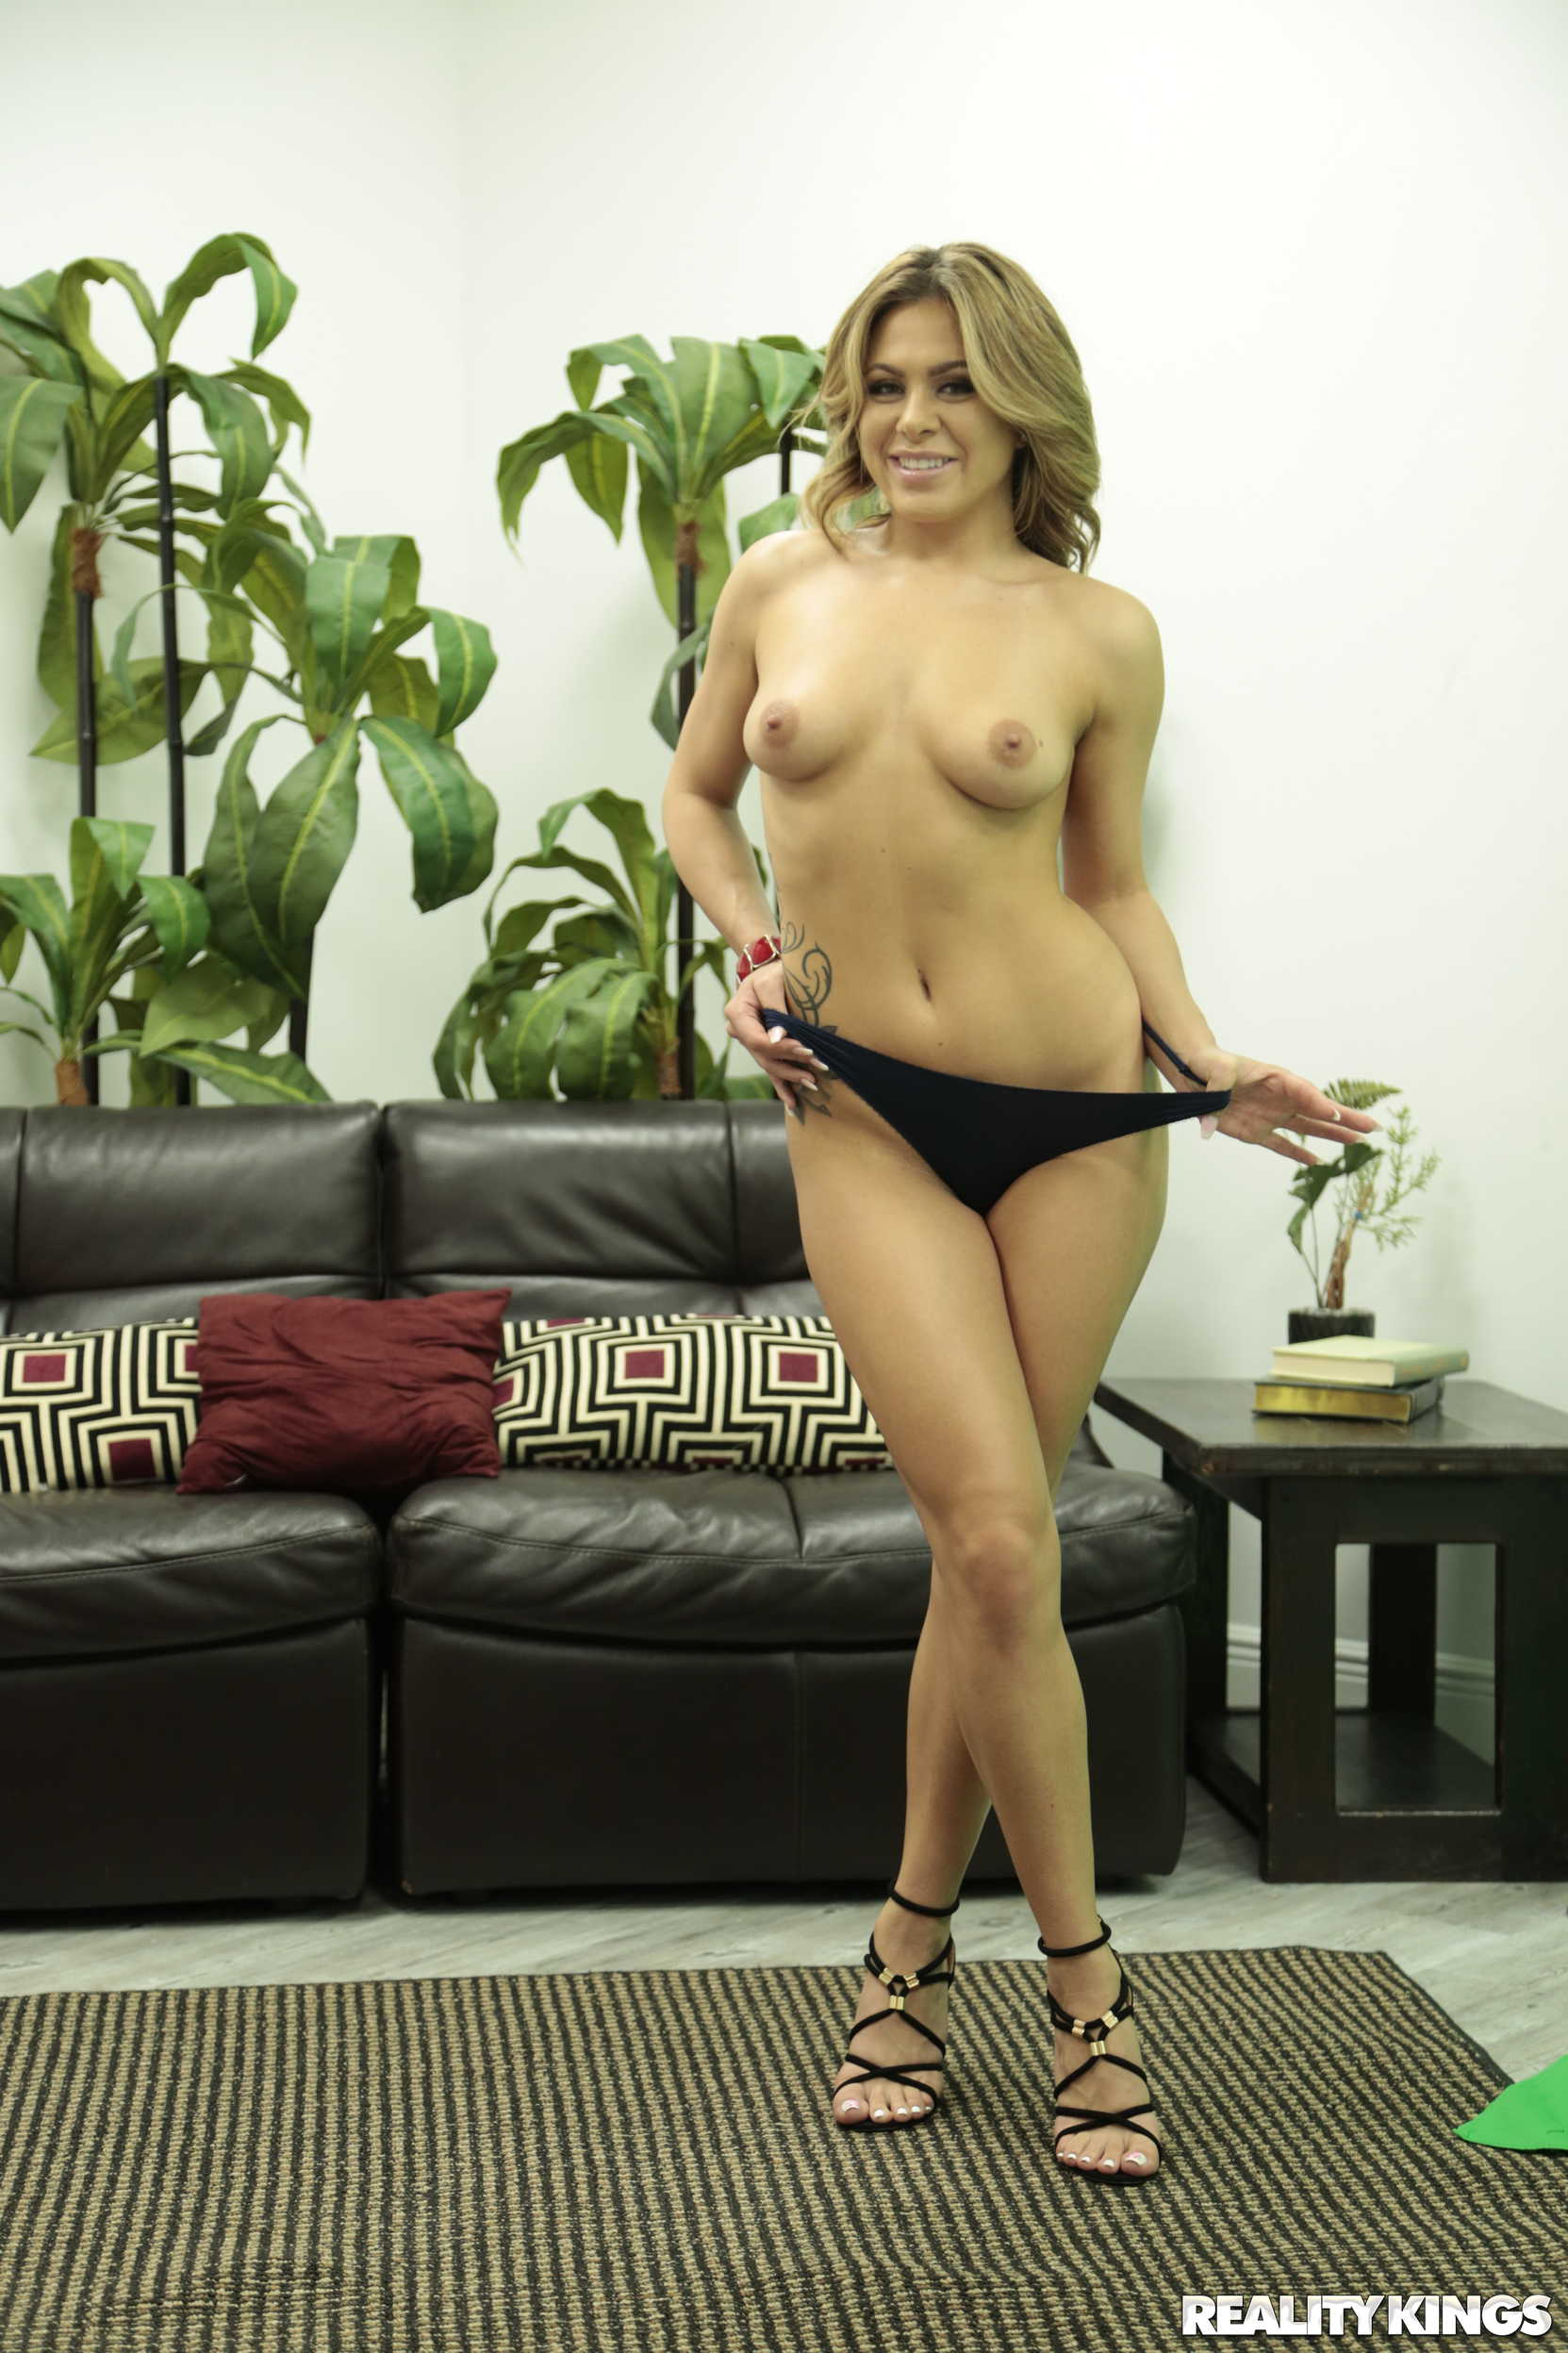 Reality Kings 'Focus Or Fuck' starring Mia Pearl (Photo 39)